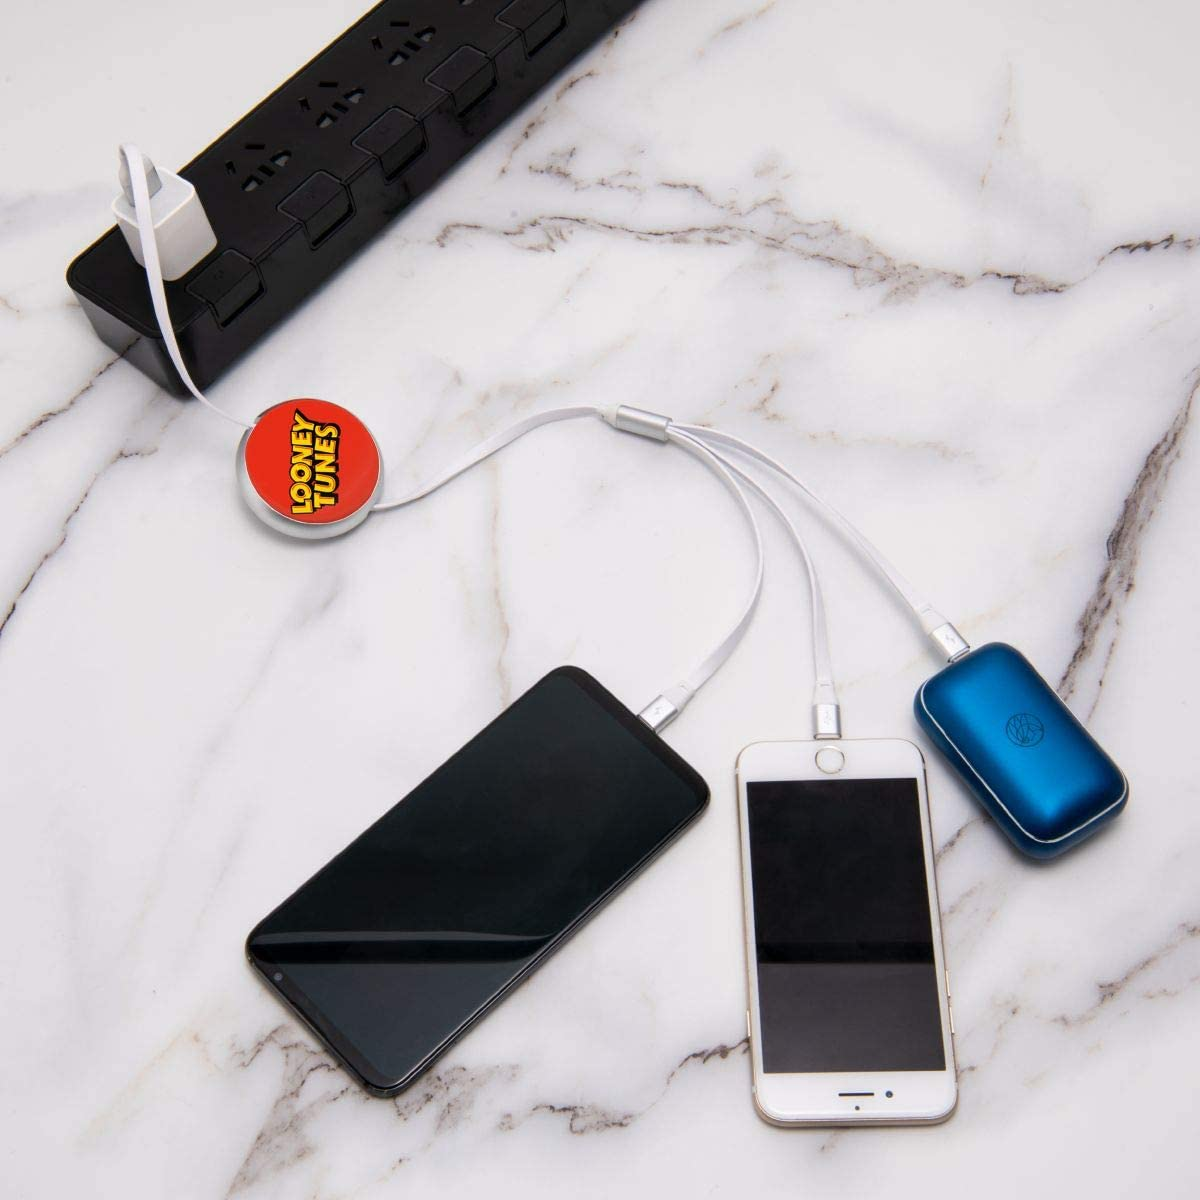 N//C Looney Tunes3-In-1 Telescopic Multi-Function Charging Cable Suitable for Apple Etc. Tpye-C Universal Interface Android